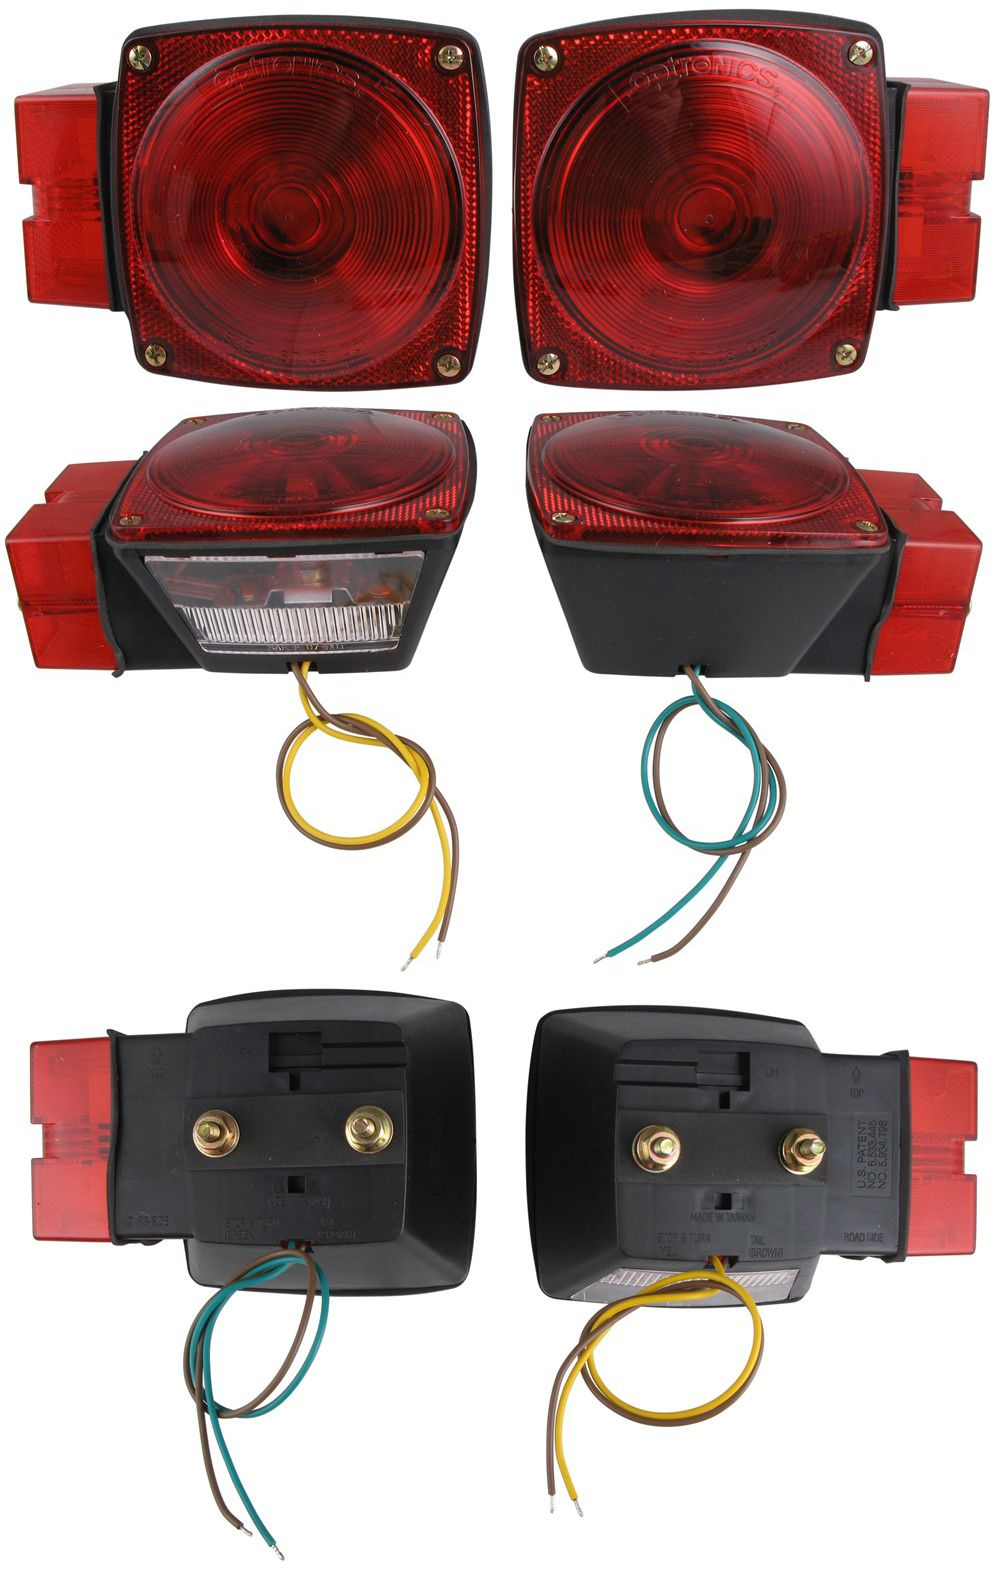 66c0b07f05445edbd78d704f7f53706c red, submersible, trailer light kit with stud mount lights trailer lights wiring harness kit at nearapp.co